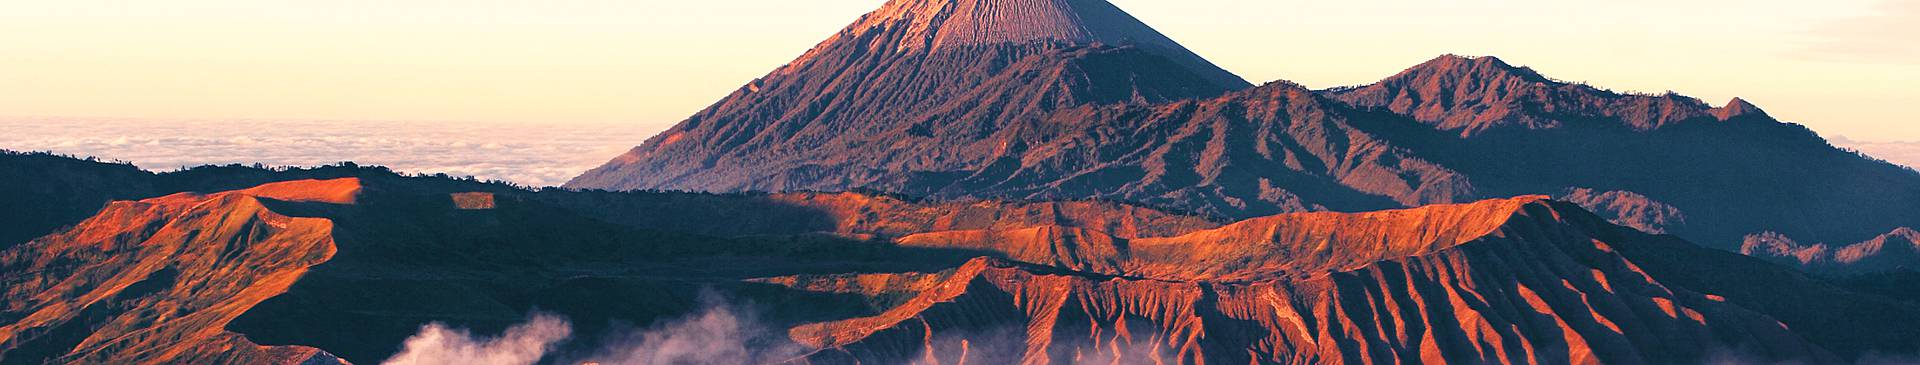 Volcano tours in Indonesia